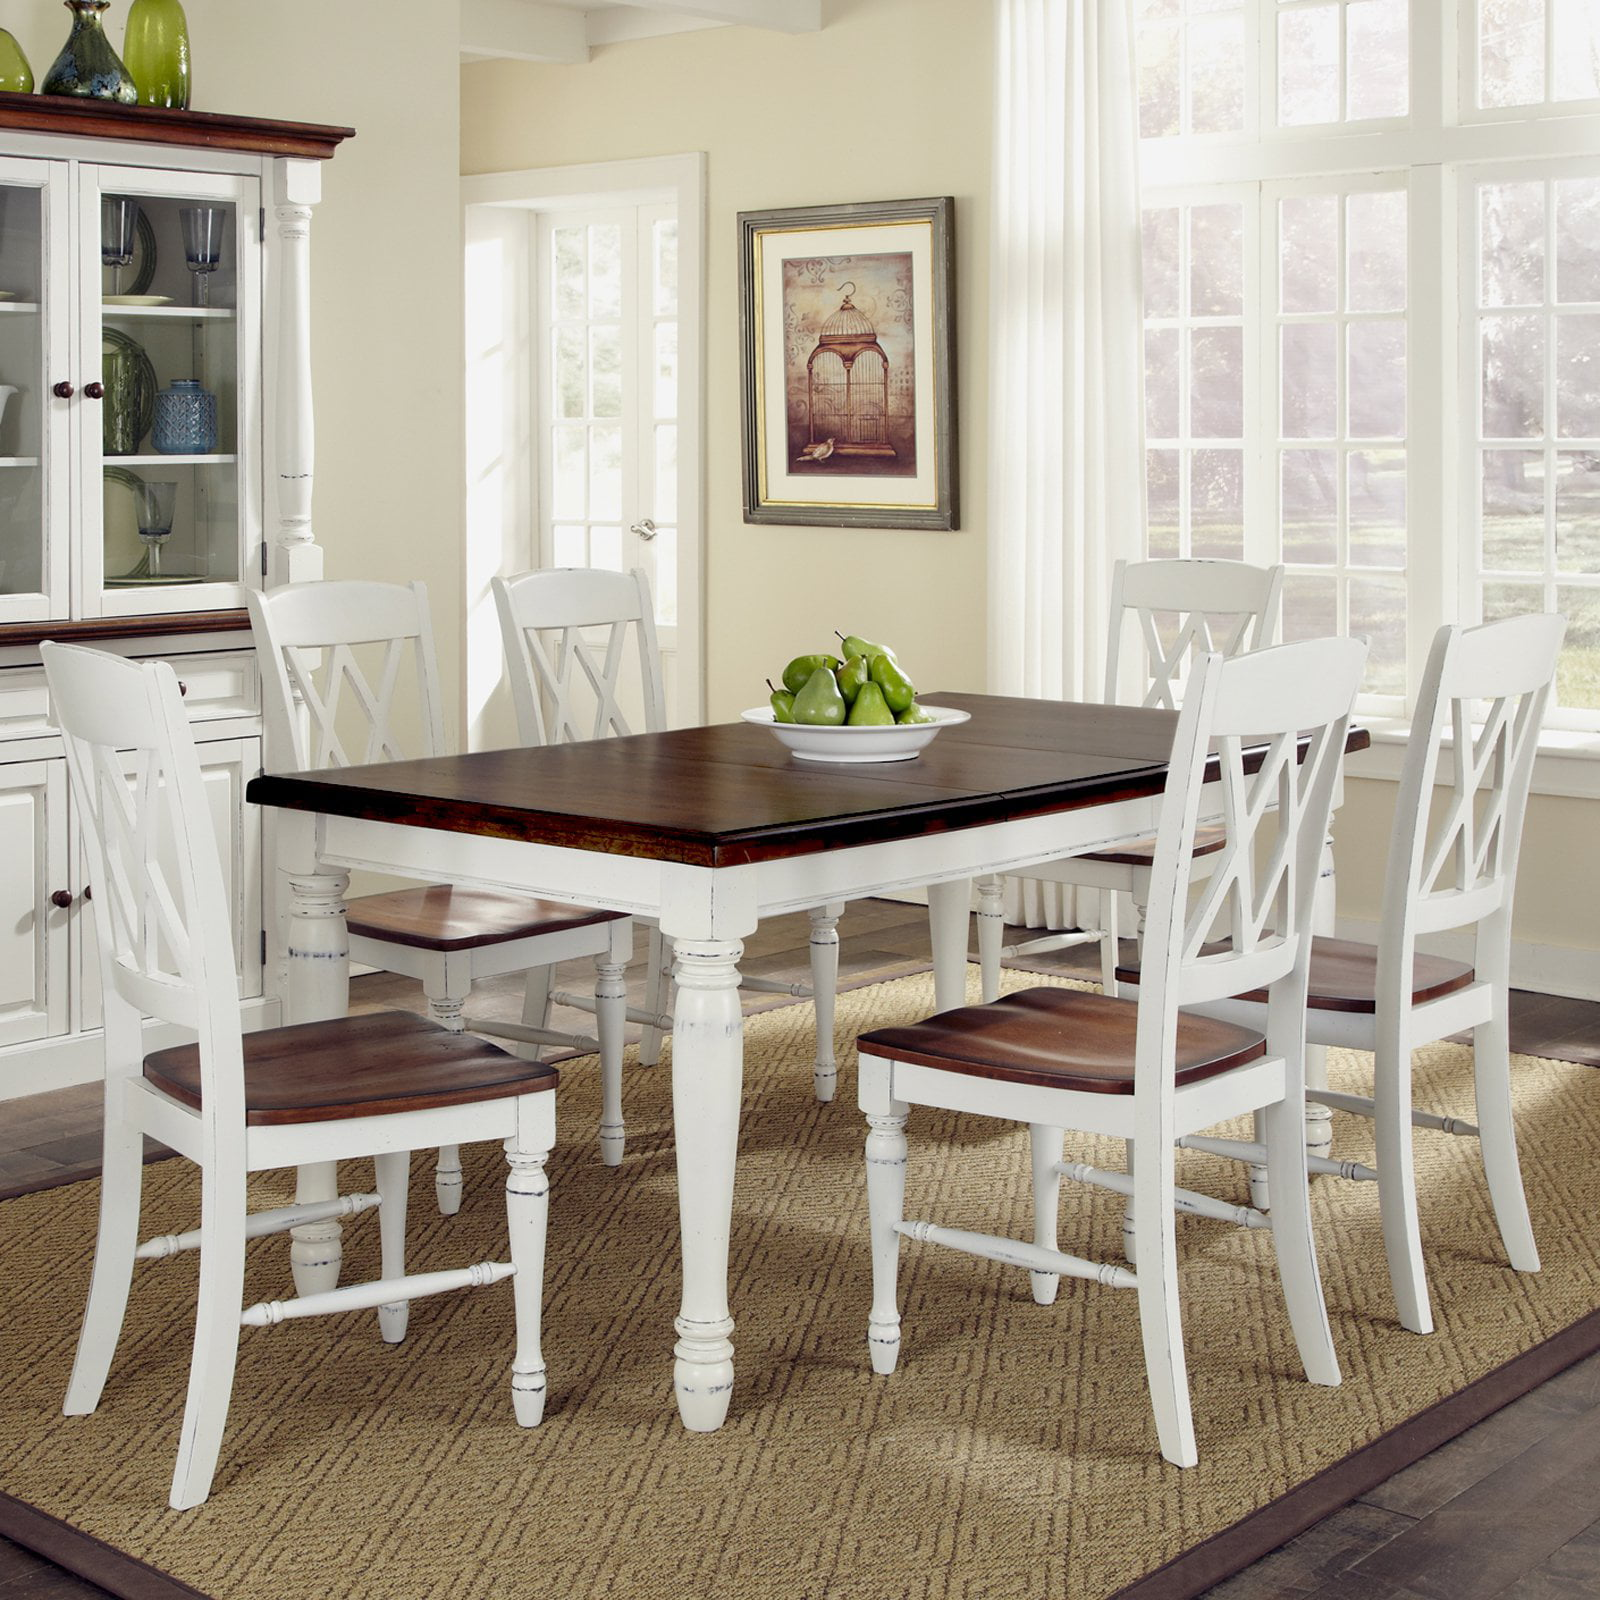 Home Styles Monarch Rectangular Dining Table and 6 Double XBack